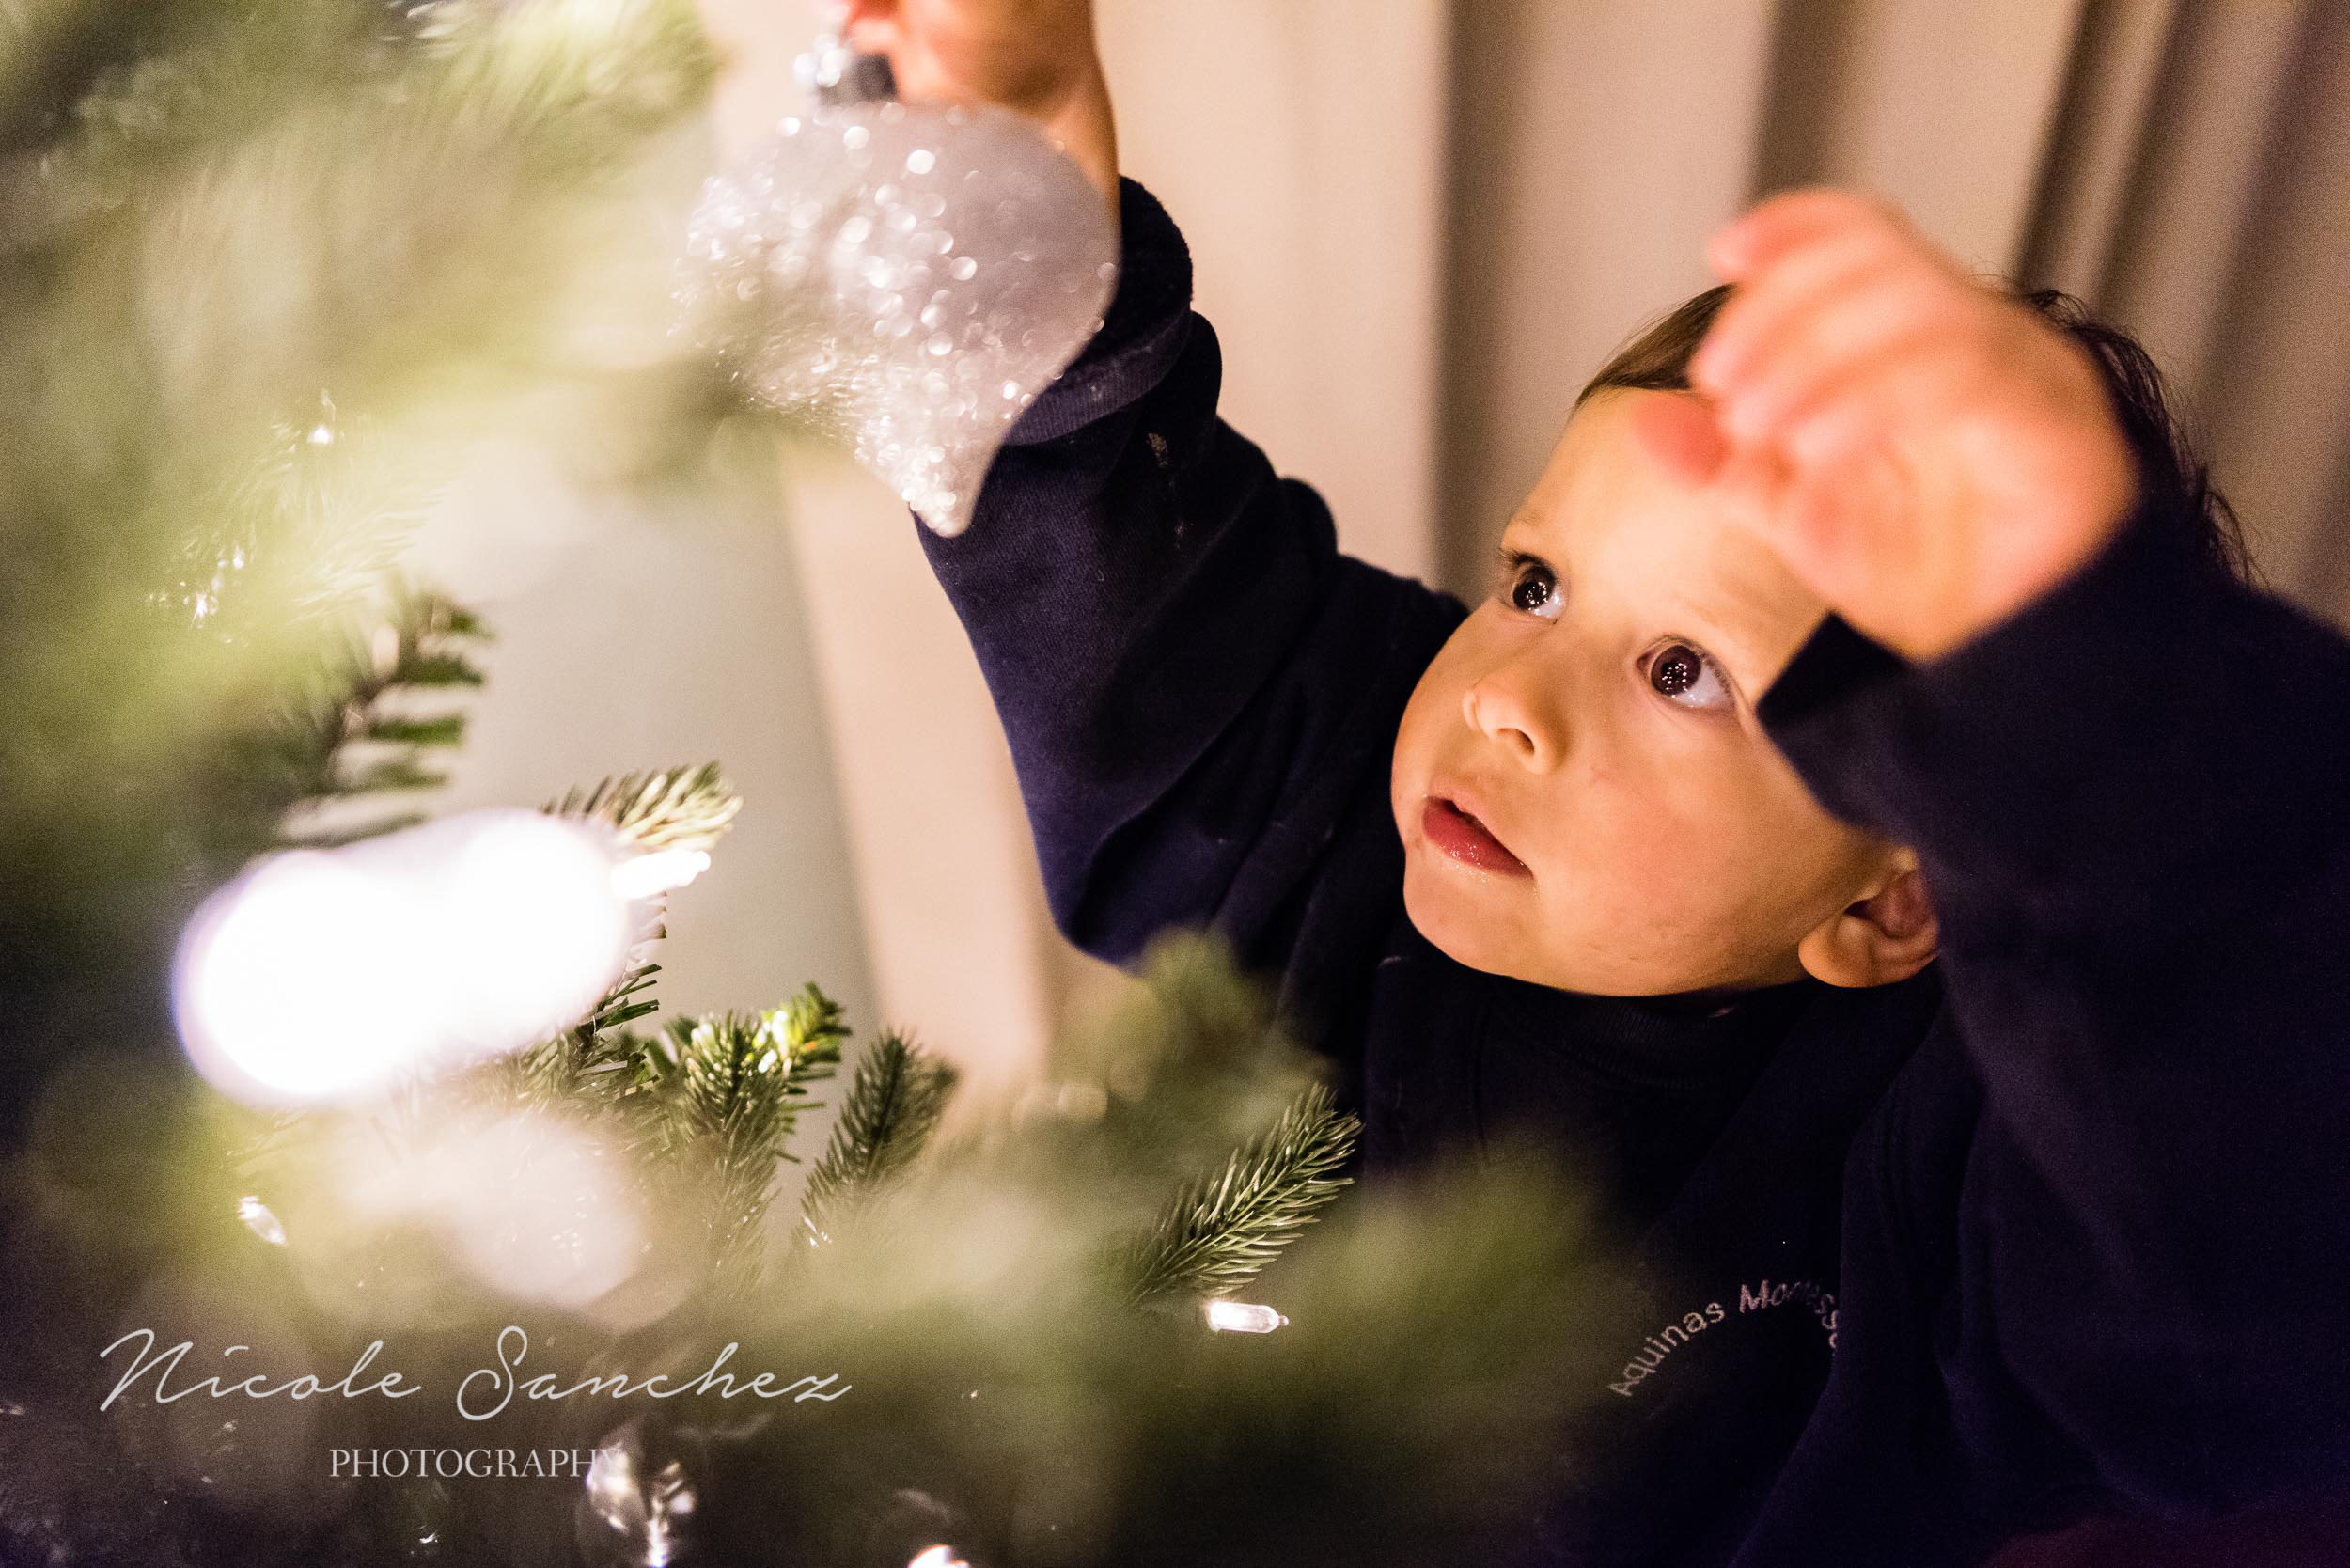 photographing-holiday-traditions-nicole-sanchez-northern-virginia-family-photographer-1-2.jpg